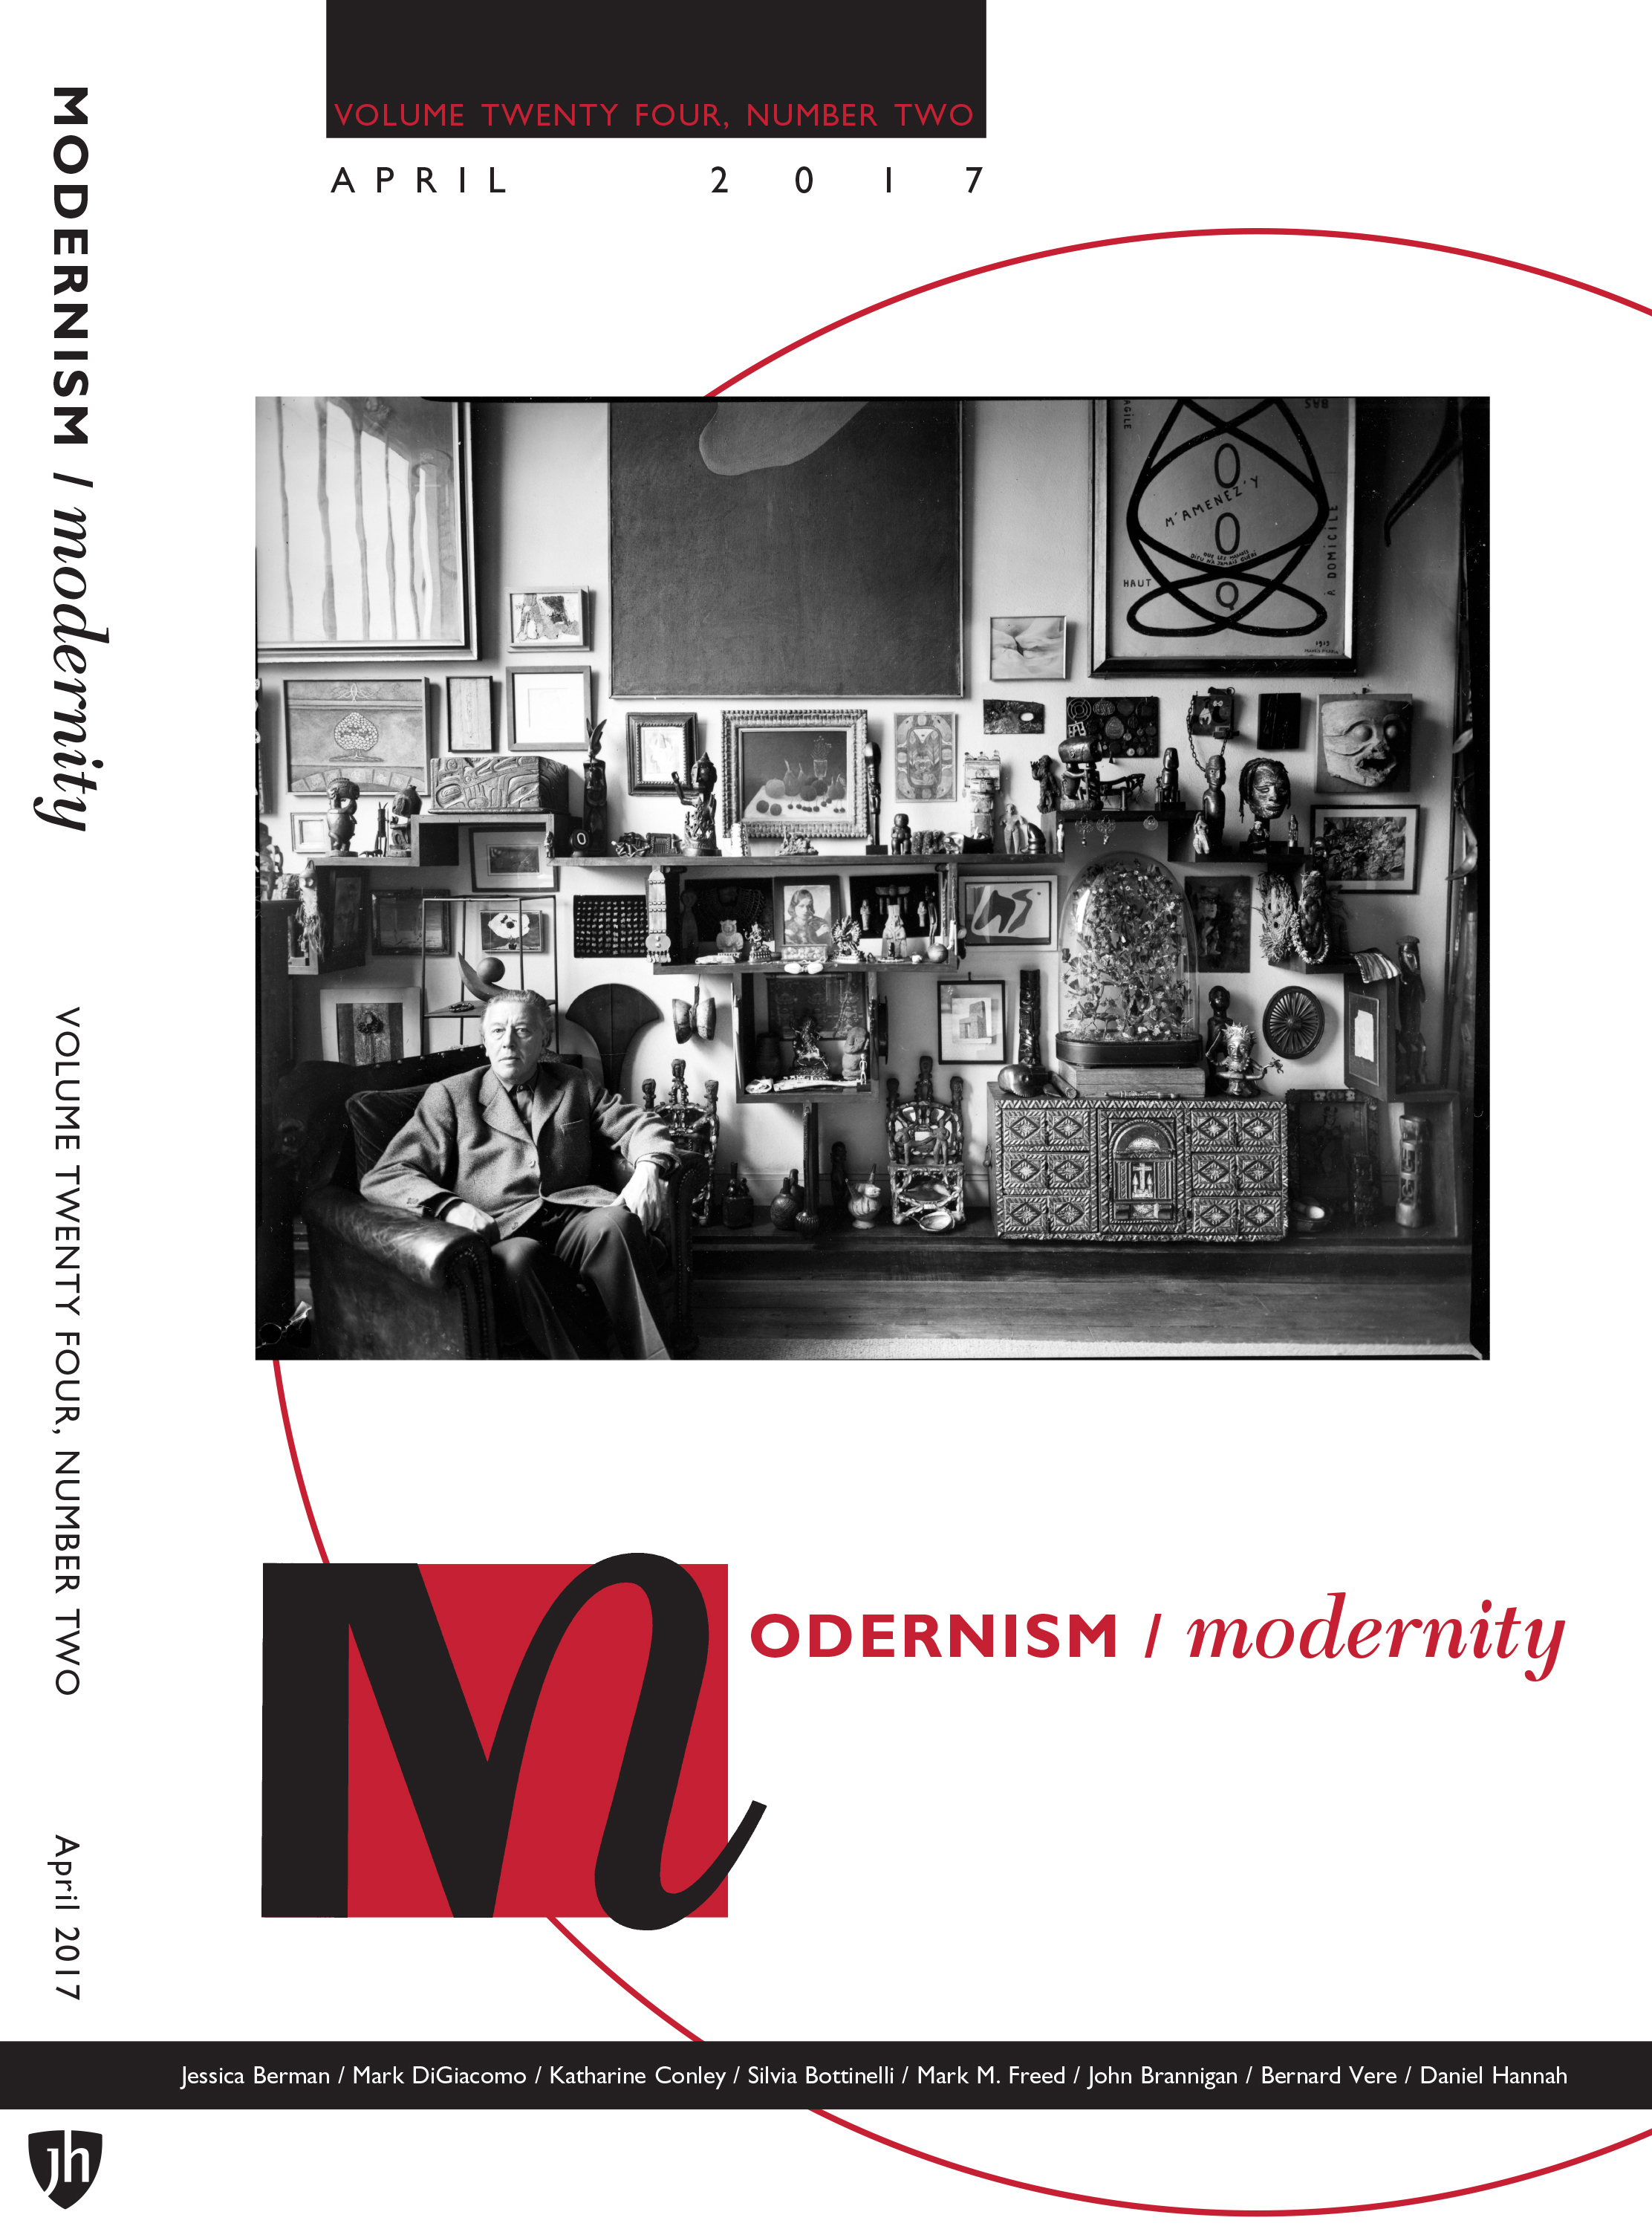 postmodernism 2 essay Post-modern gibberish essay generator may 28, 2014 generate your own postmodern nonsense here here is a sample of the politics, psychology, society tagged continental, essay, foucault, french, freud, generator, gibberish, lacan, marx, philosophy, postmodern.